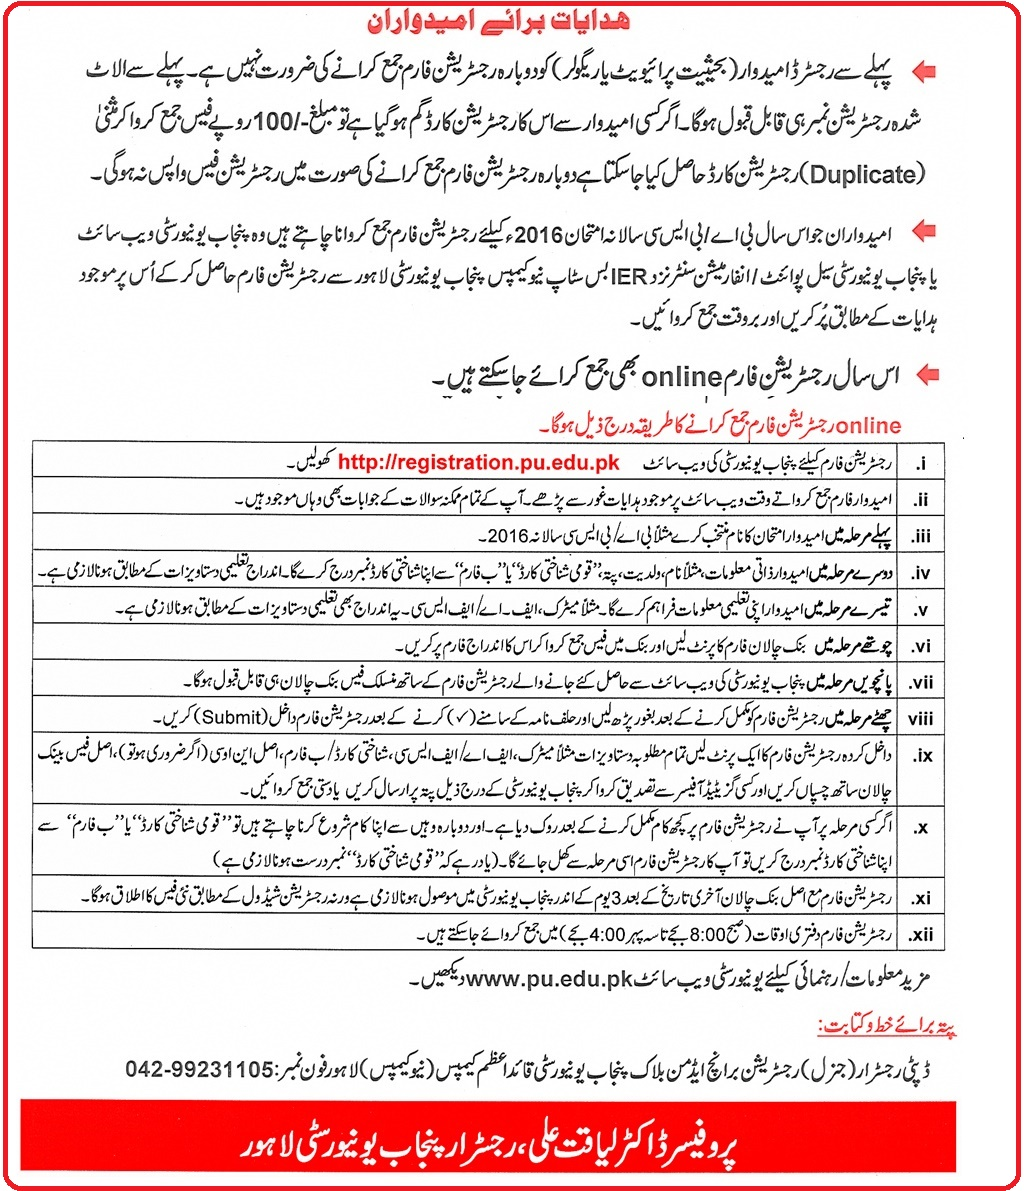 Punjab University BA Admission Process for Private Candidates